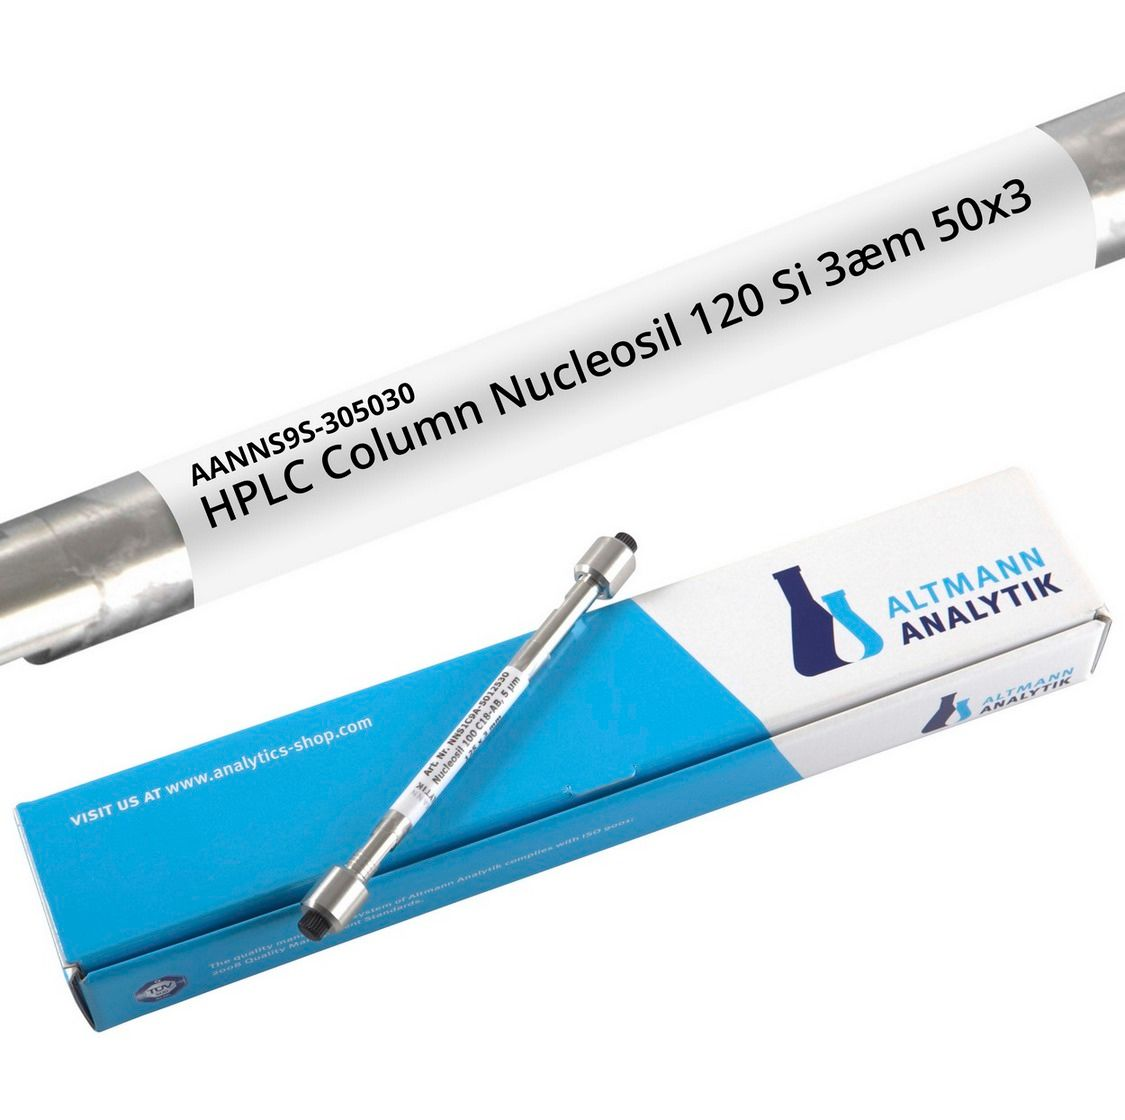 HPLC Column Nucleosil 120 Si 3µm 50x3 mm, 120A